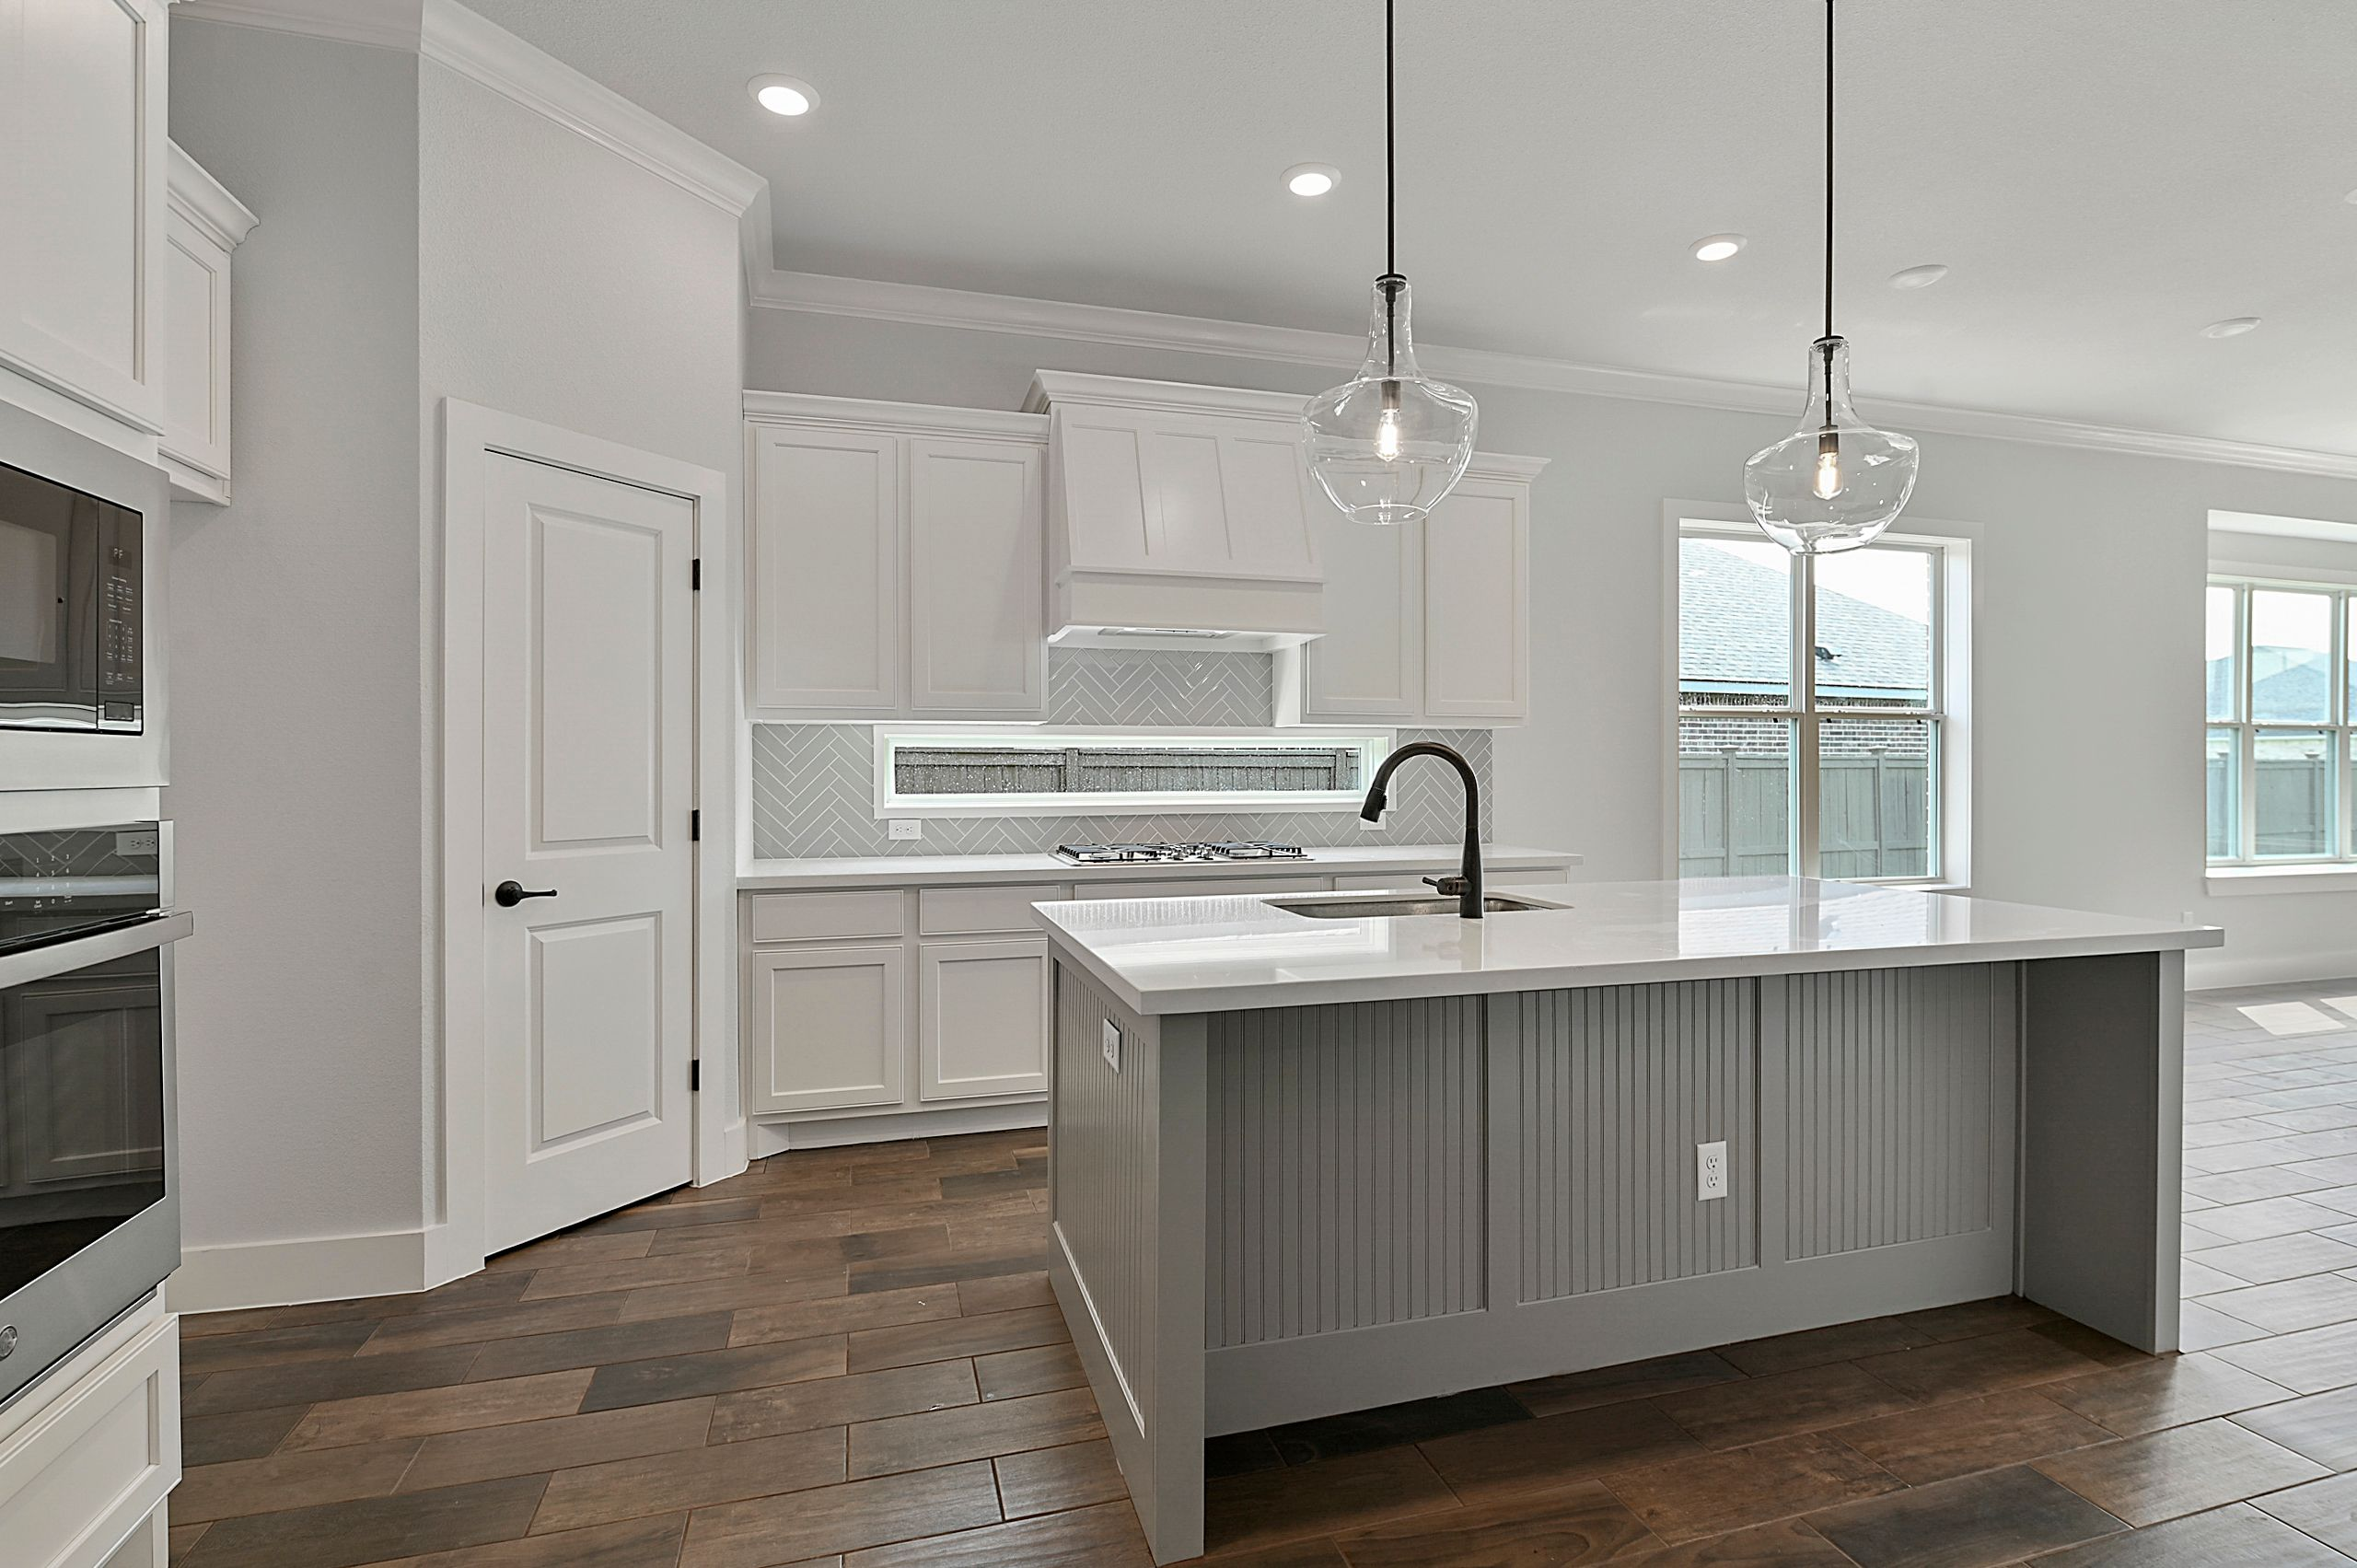 Kitchen featured in the Norah By Blackstone Homes in Bryan-College Station, TX